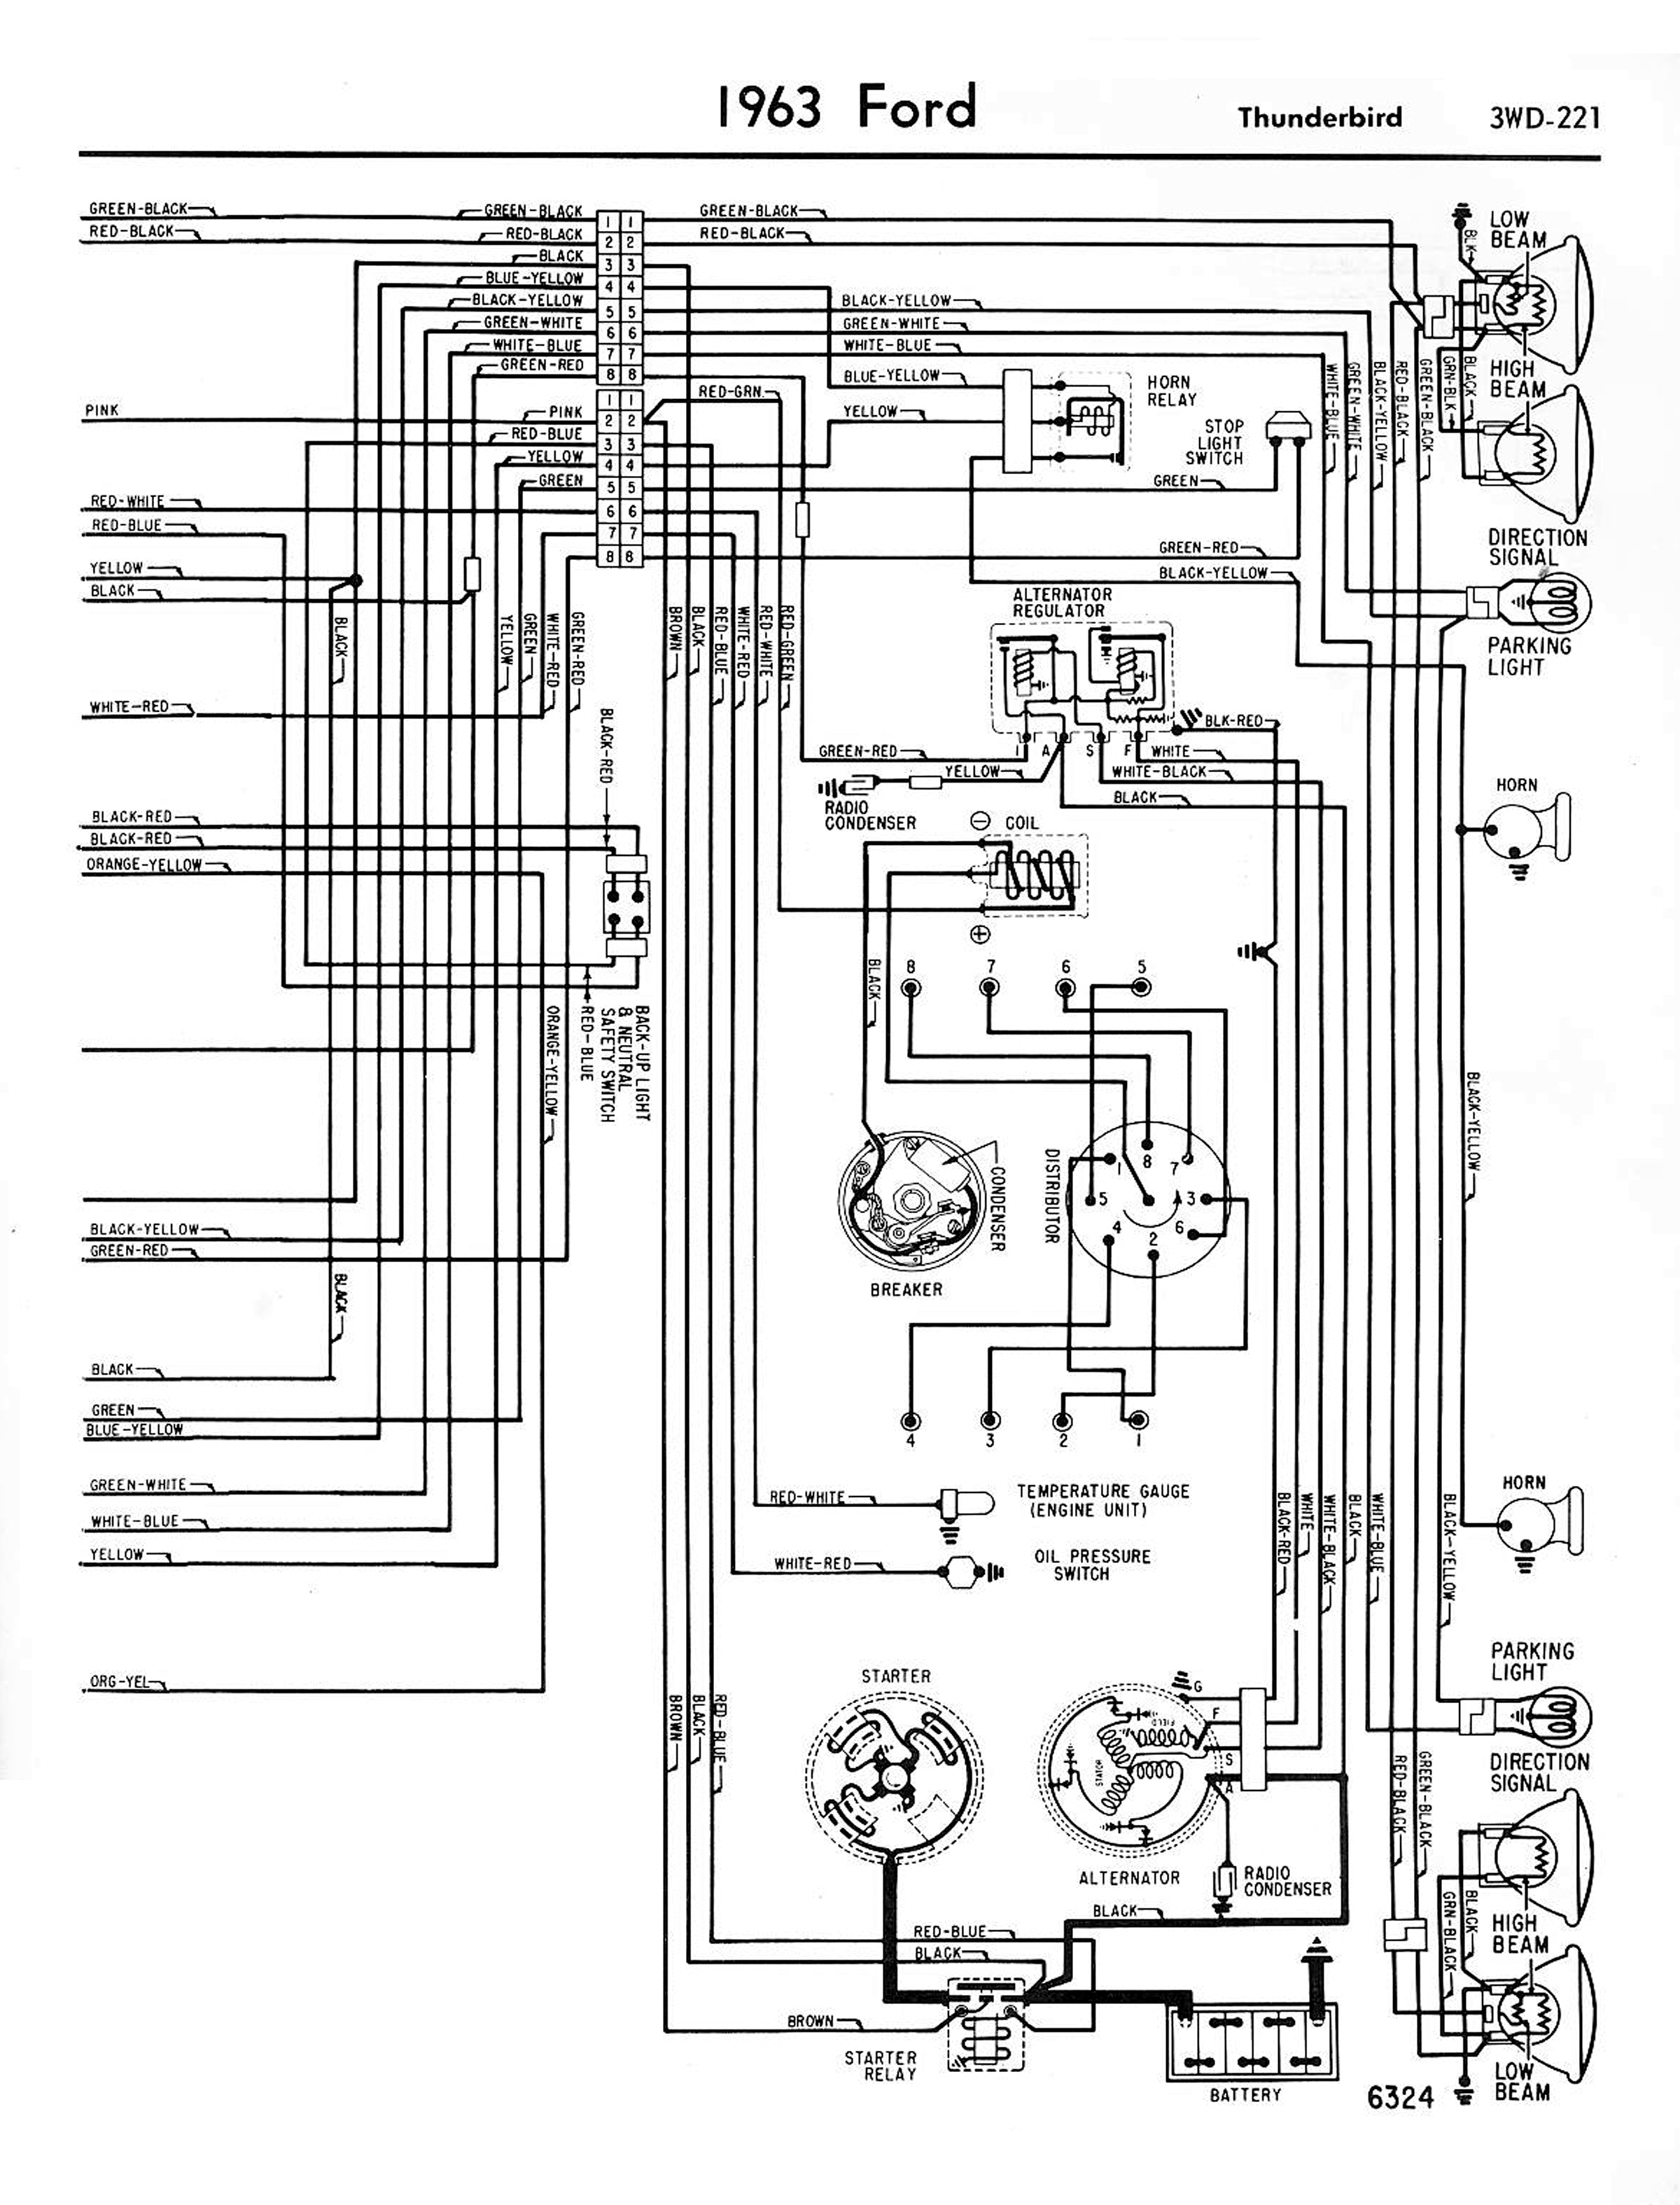 63TbirdWiringDiagramRight 1958 68 ford electrical schematics wiring diagram for 1966 ford fairlane at gsmx.co